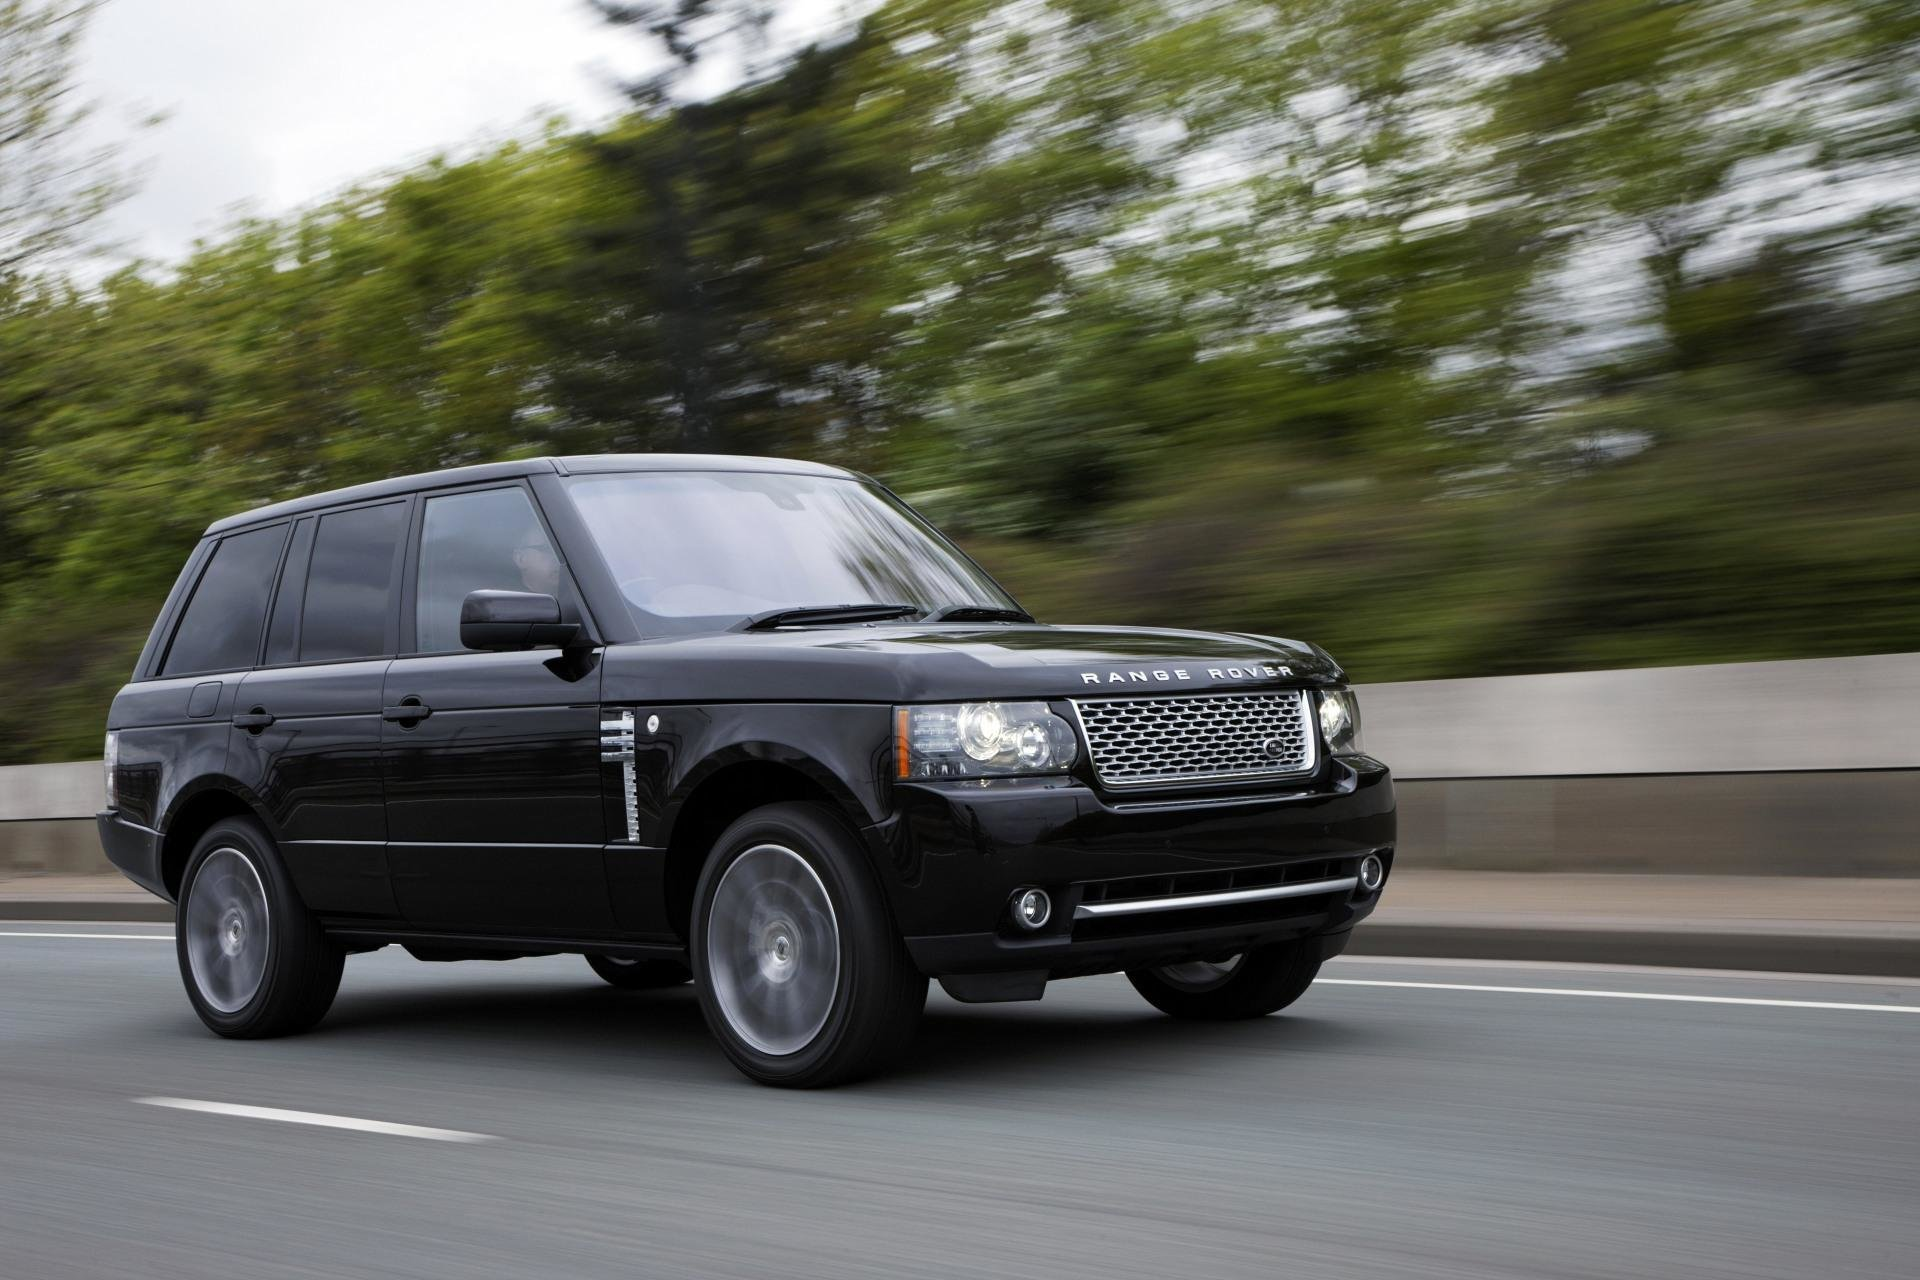 Latest 2011 Land Rover Range Rover Autobiography Black Edition Free Download